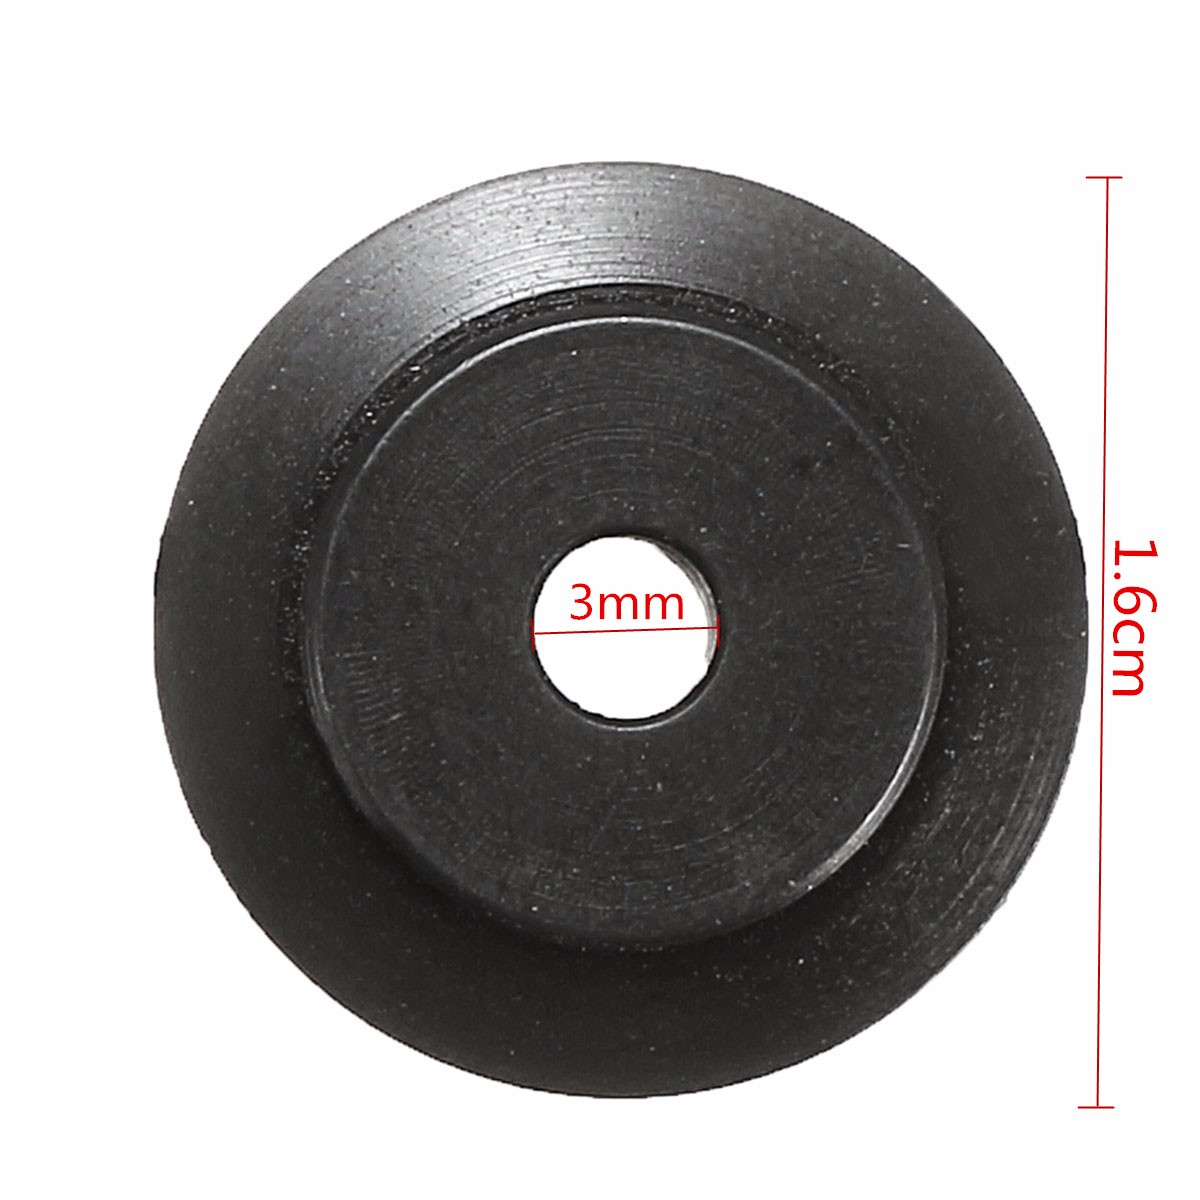 Replacement Spare Pipe Slice Blade Cutting Wheel Disc for 15mm/22mm Tube Cutter